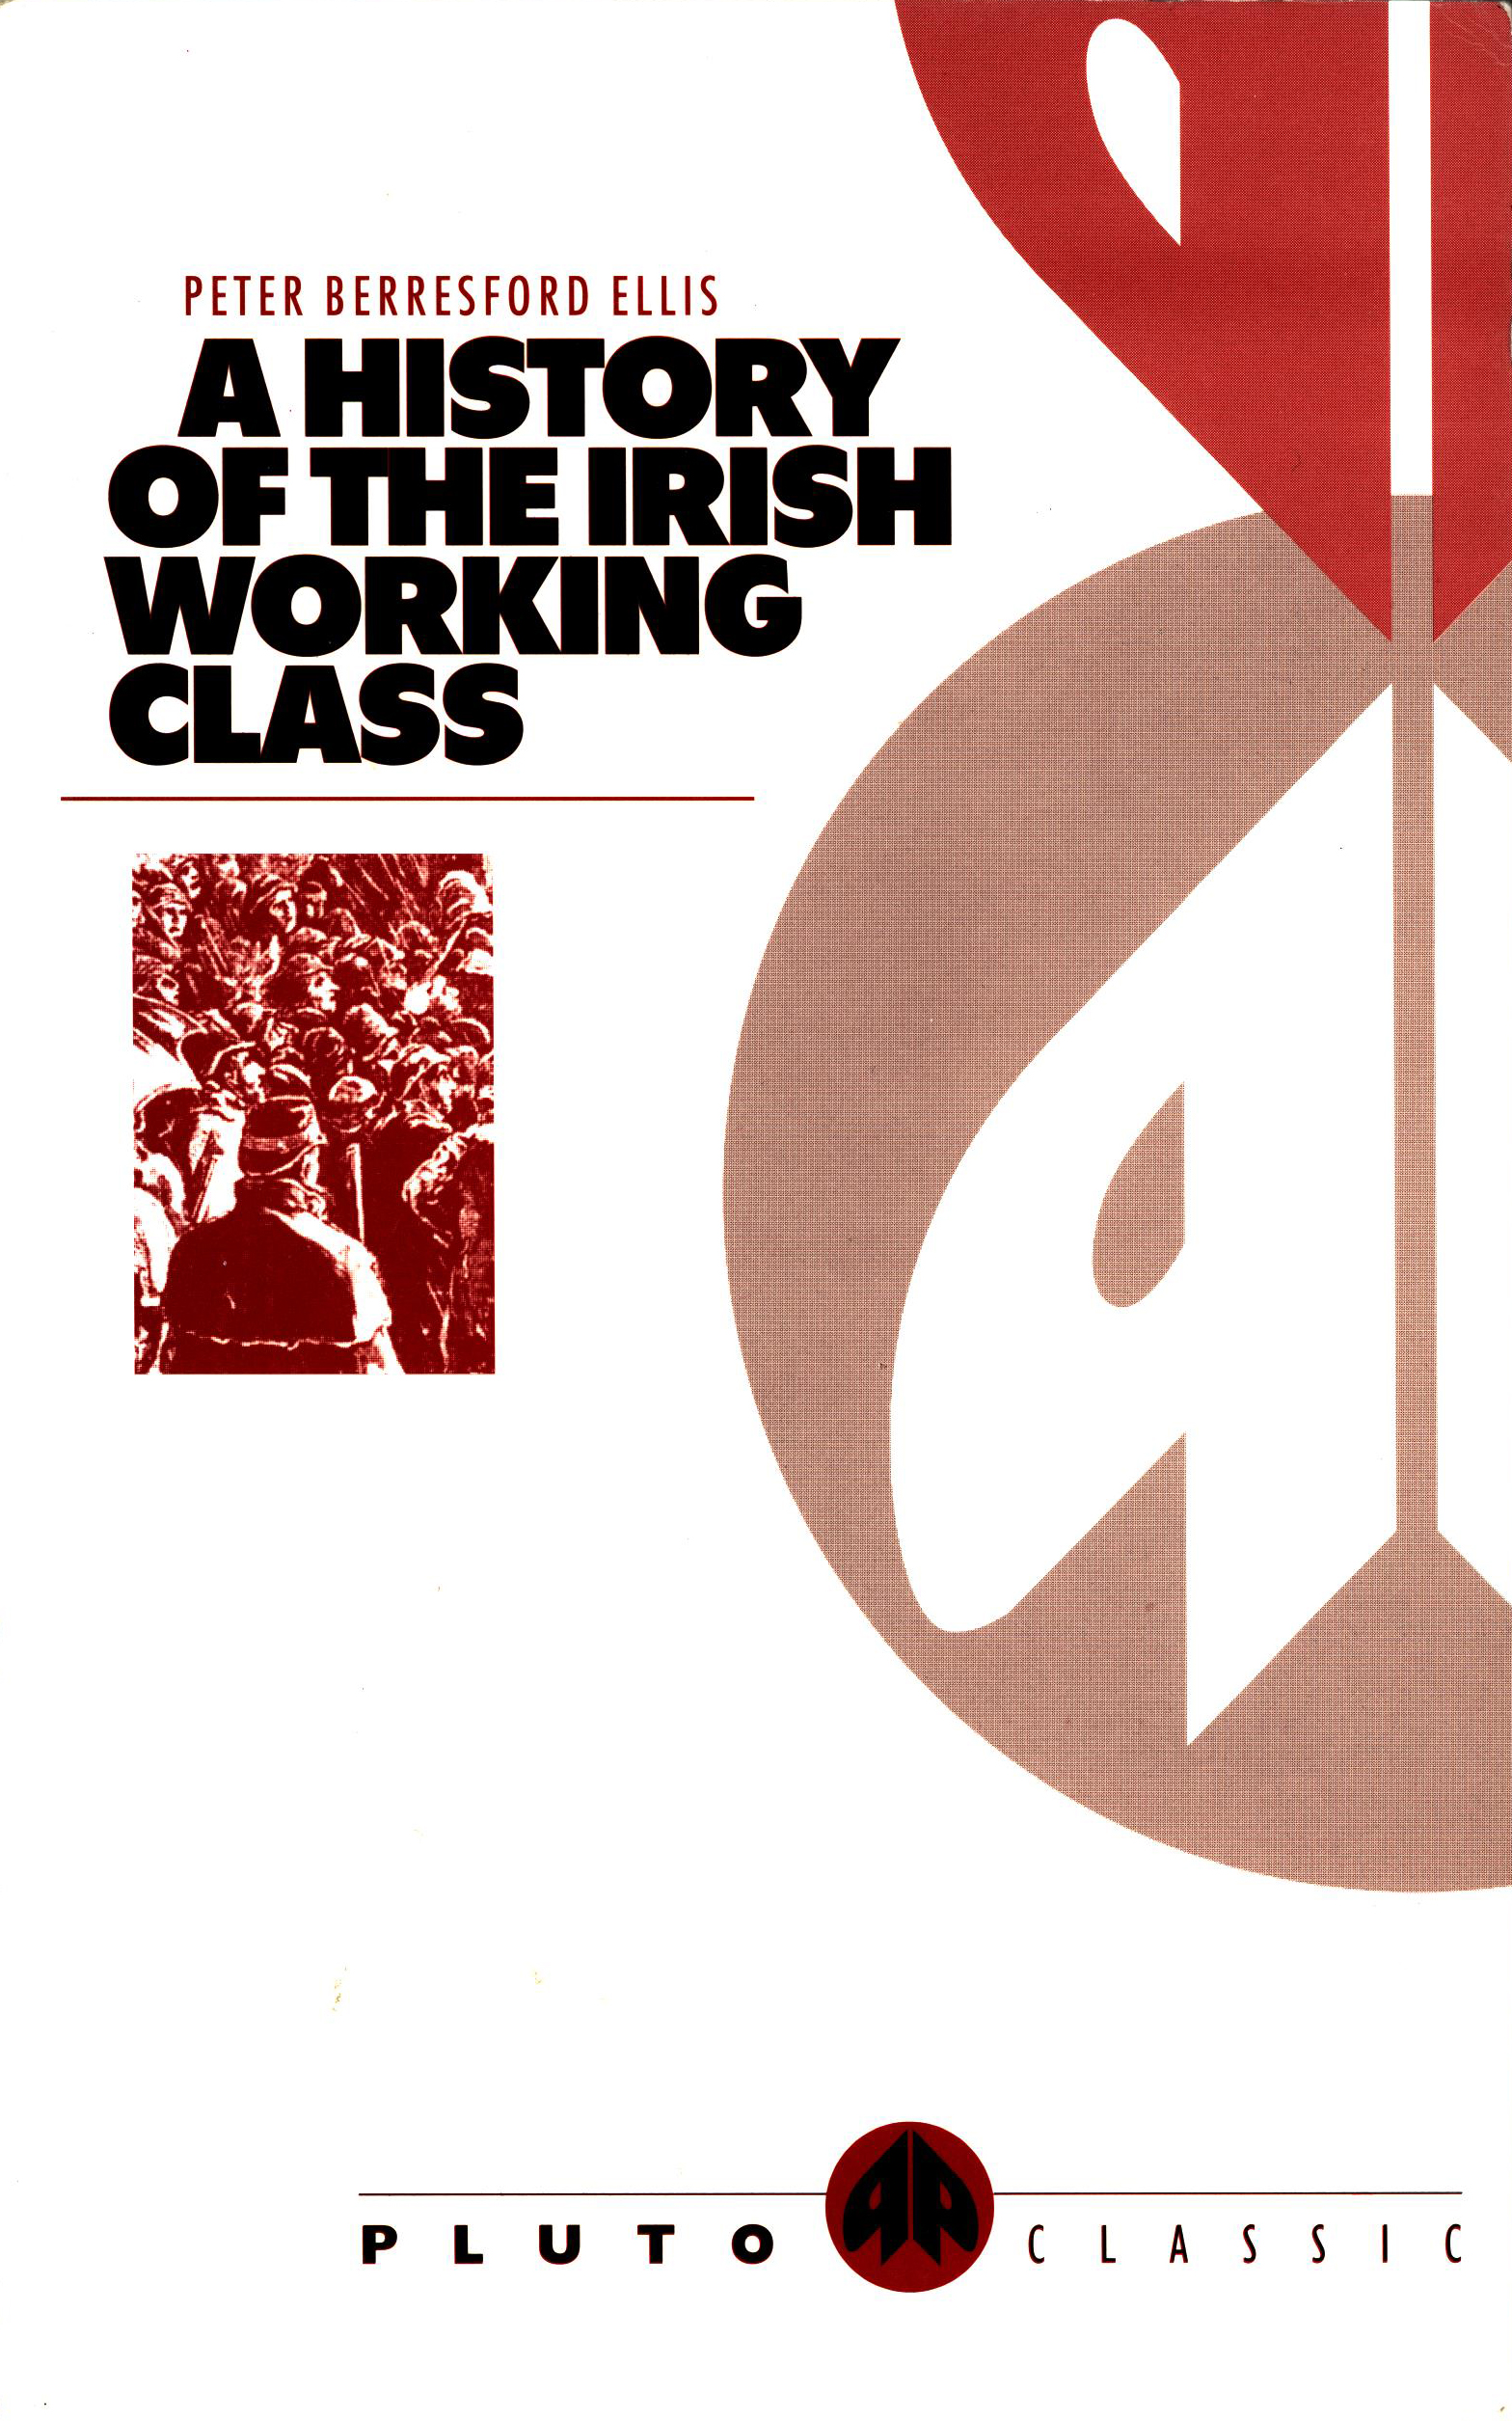 Peter Berresford Ellis: A History of the Irish Working Class